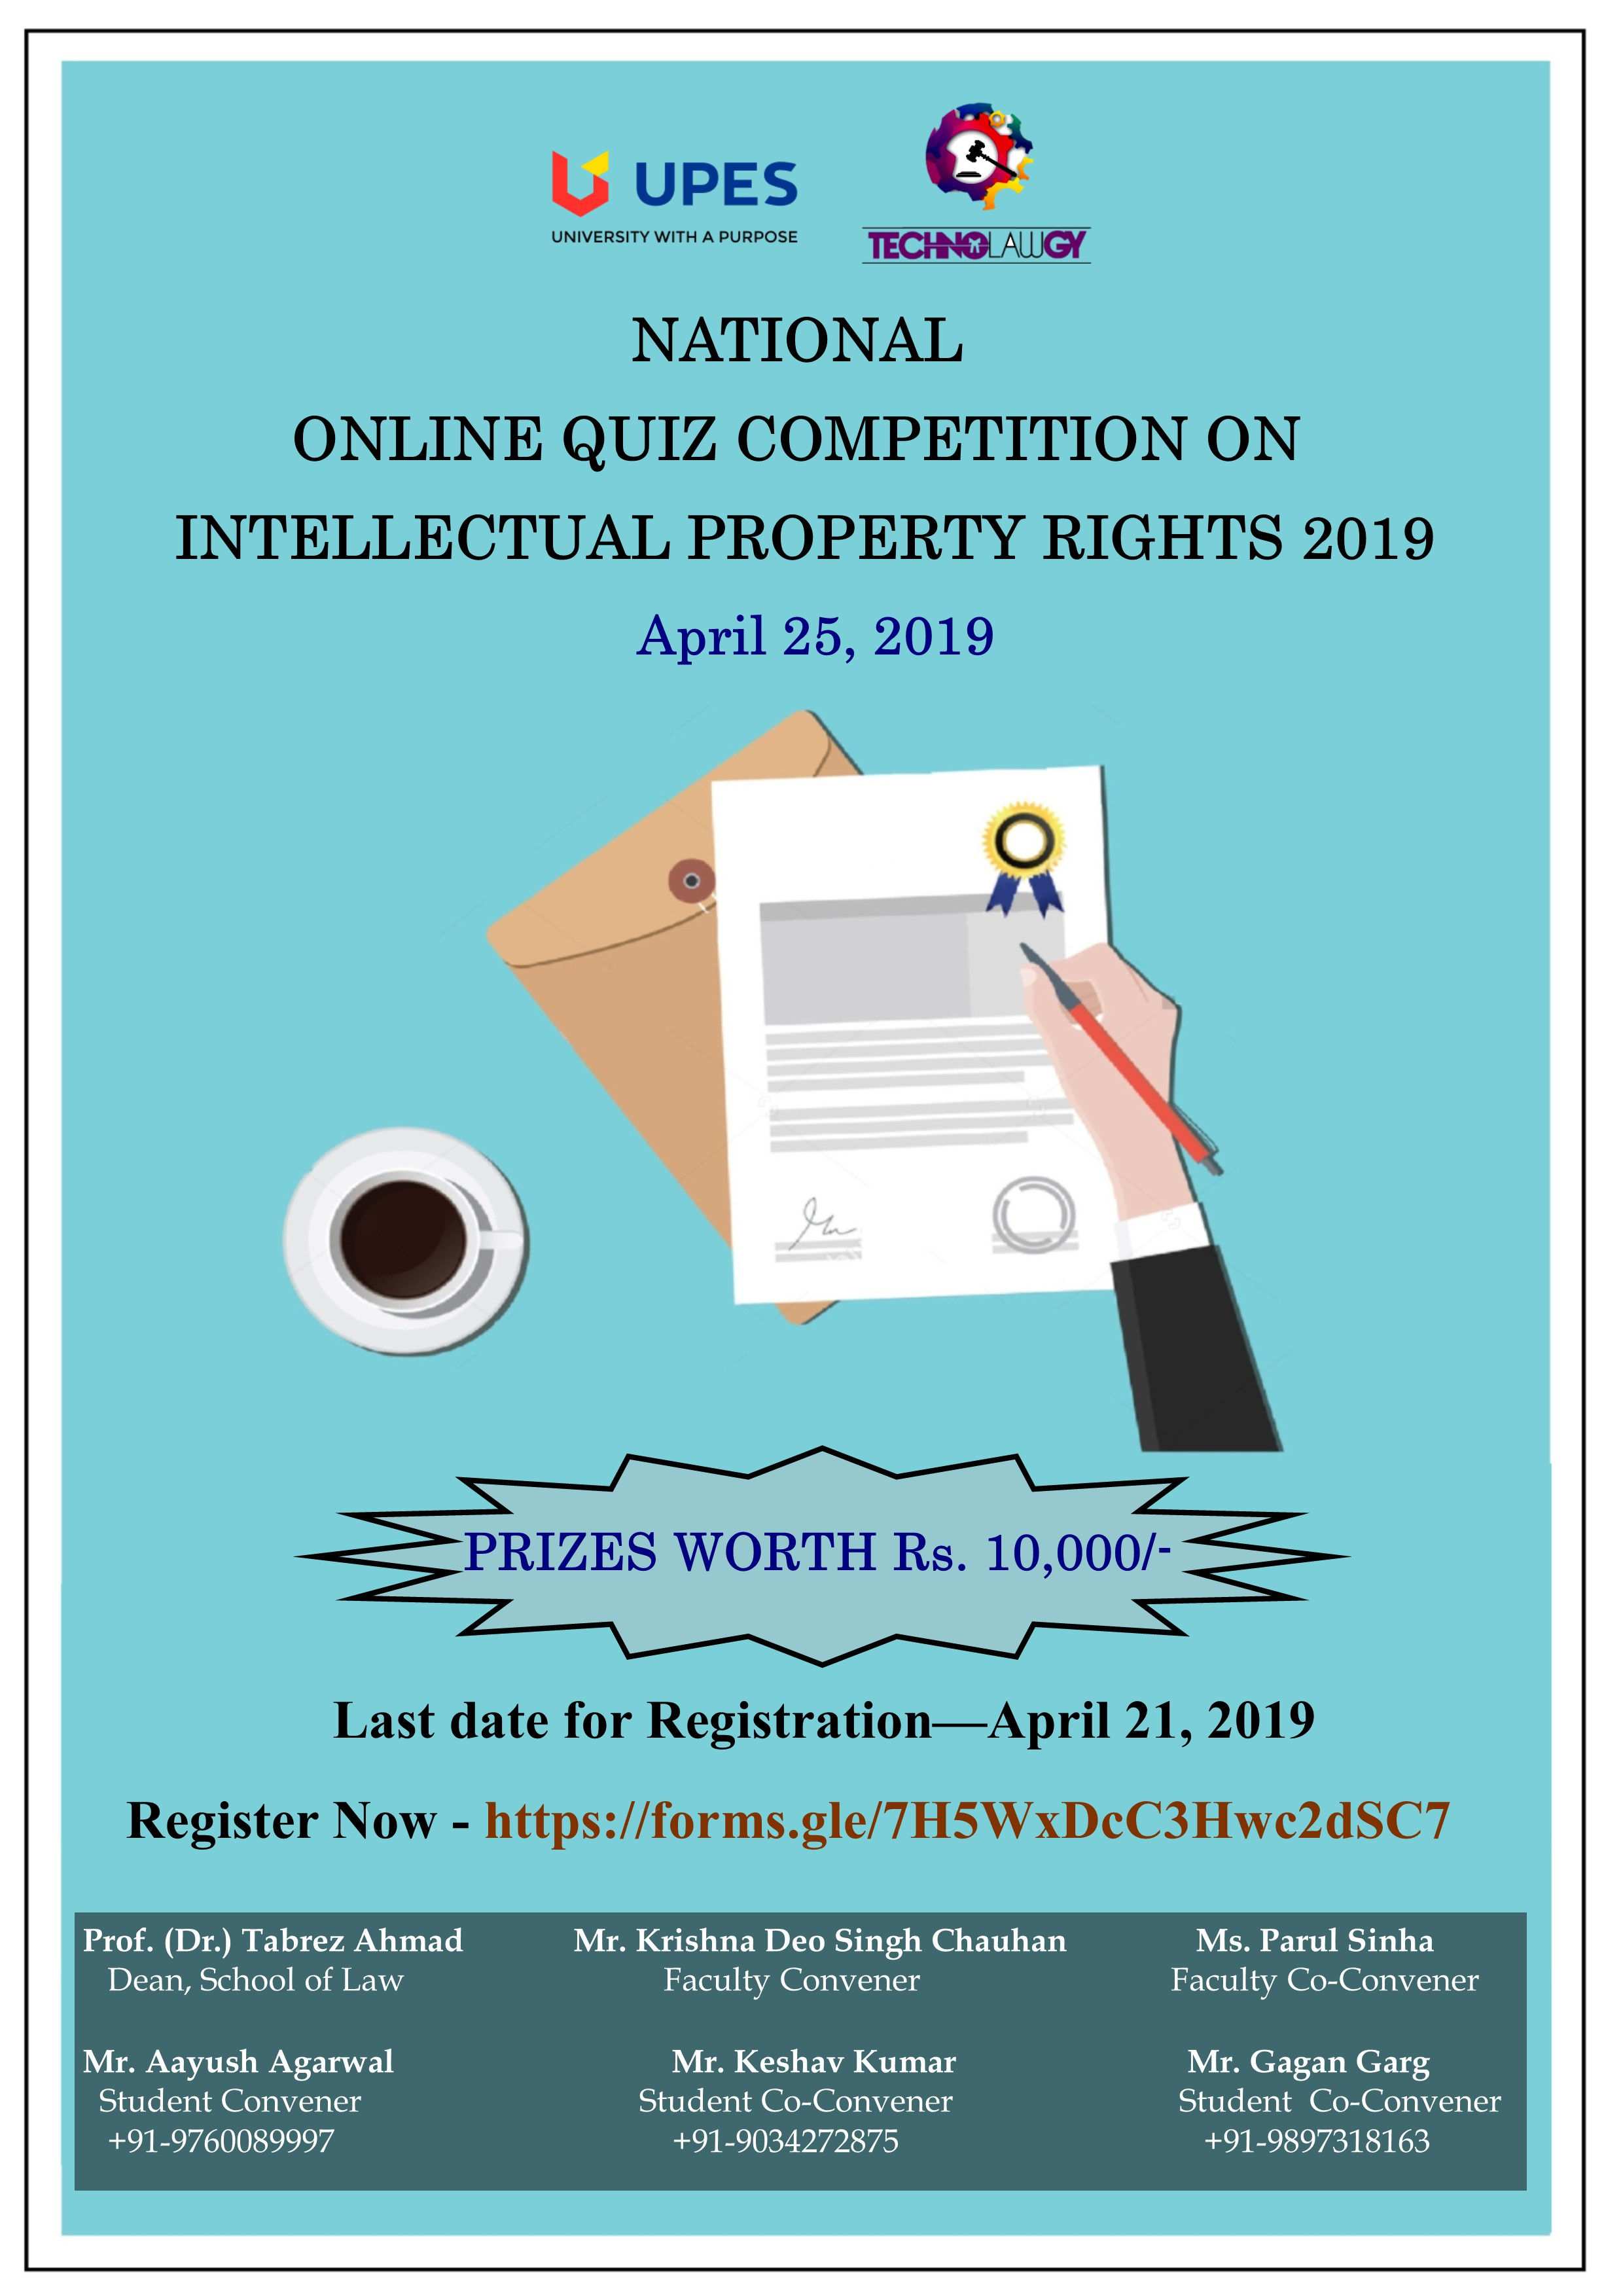 UPES Online IPR Quiz Competition